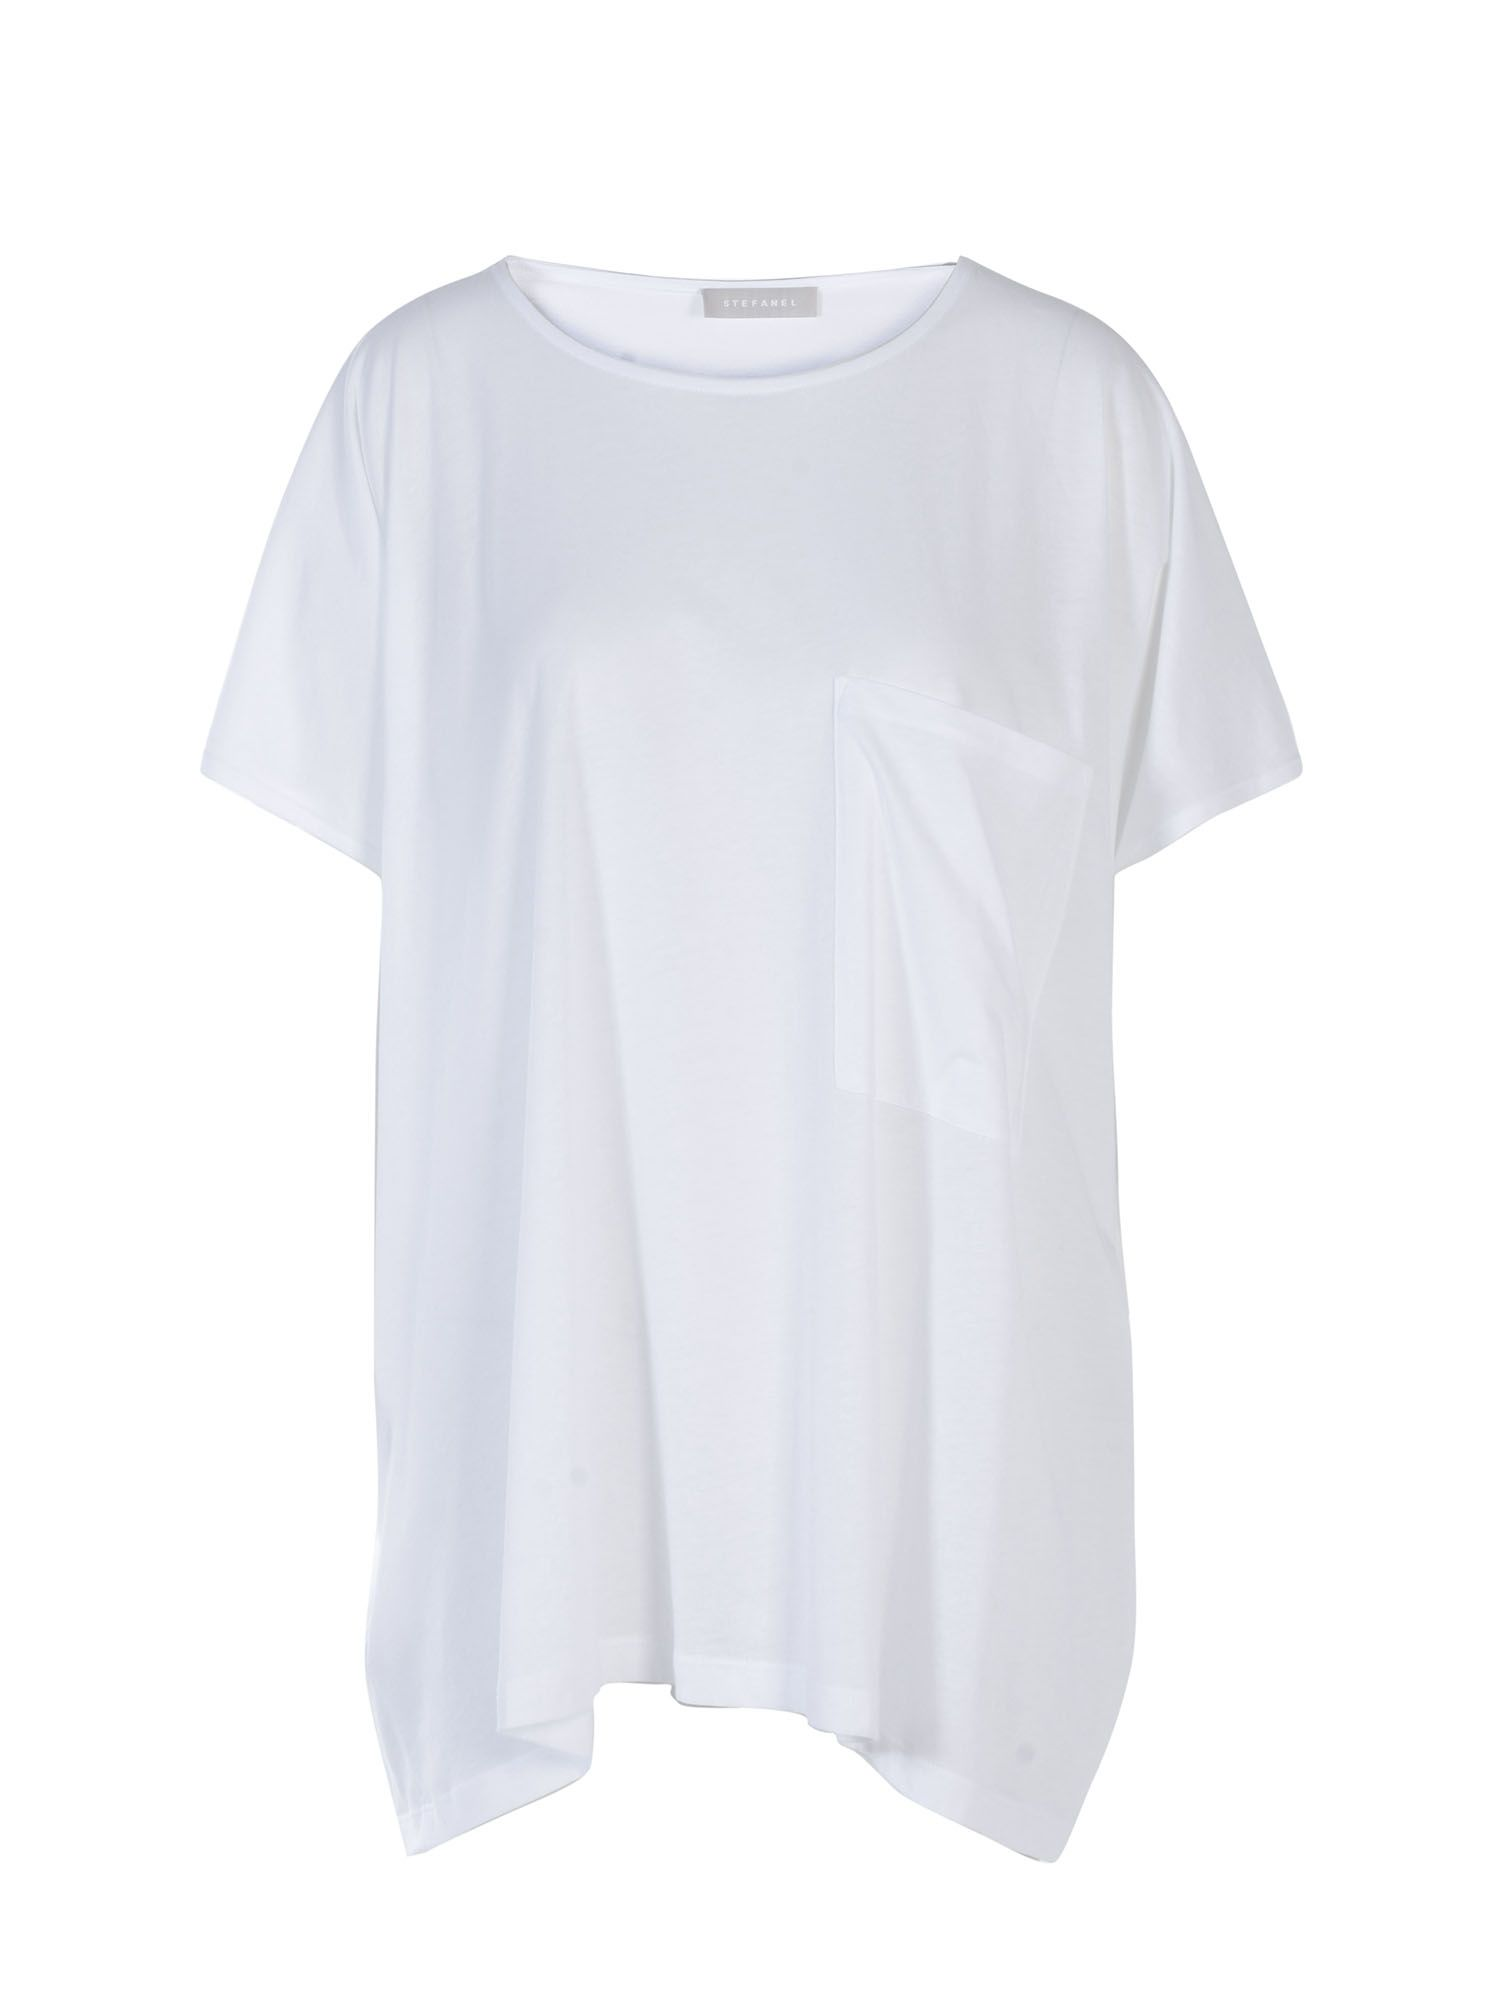 Stefanel Oversize Cotton Jersey T-Shirt., White